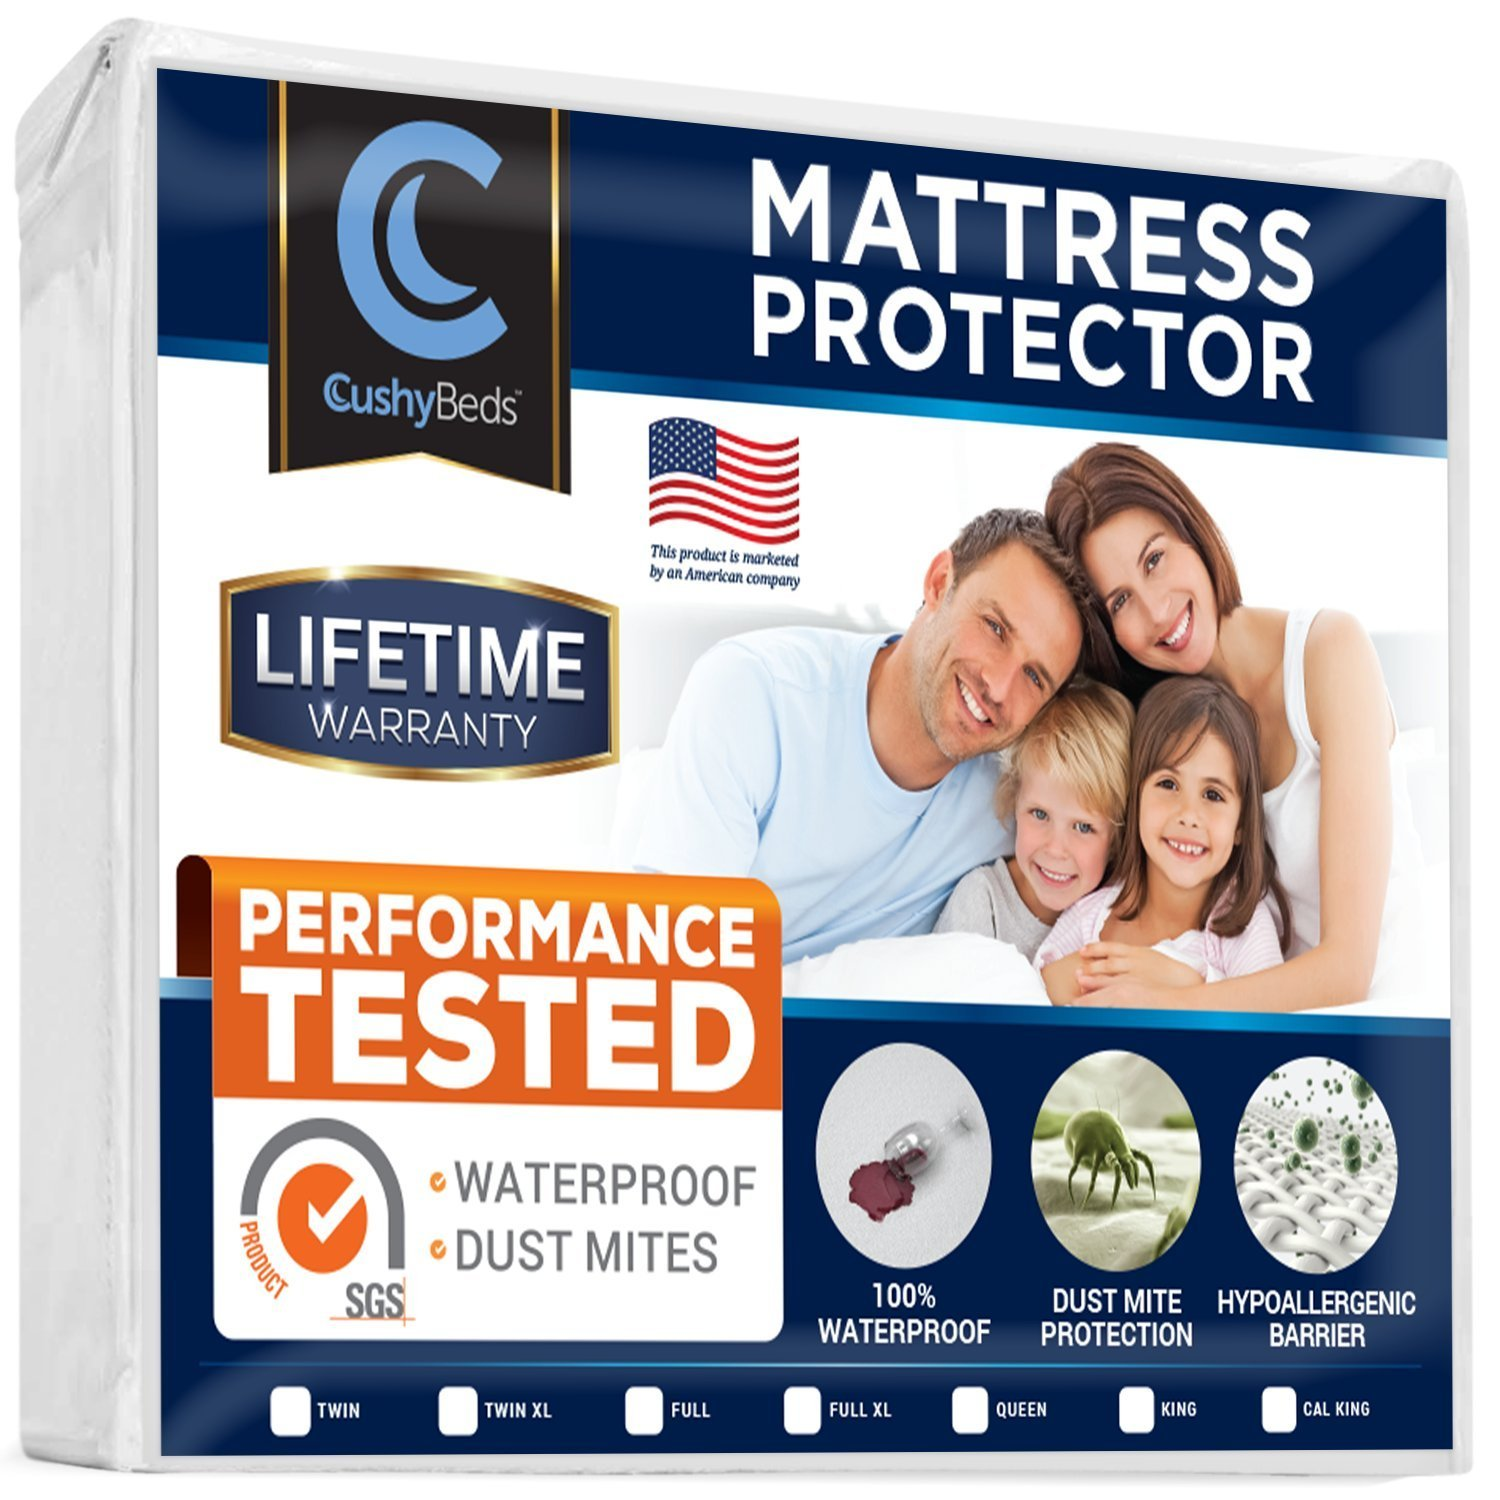 Premium Mattress Protector Cover by CushyBeds Lab Tested 100% Waterproof, Hypoallergenic,... by